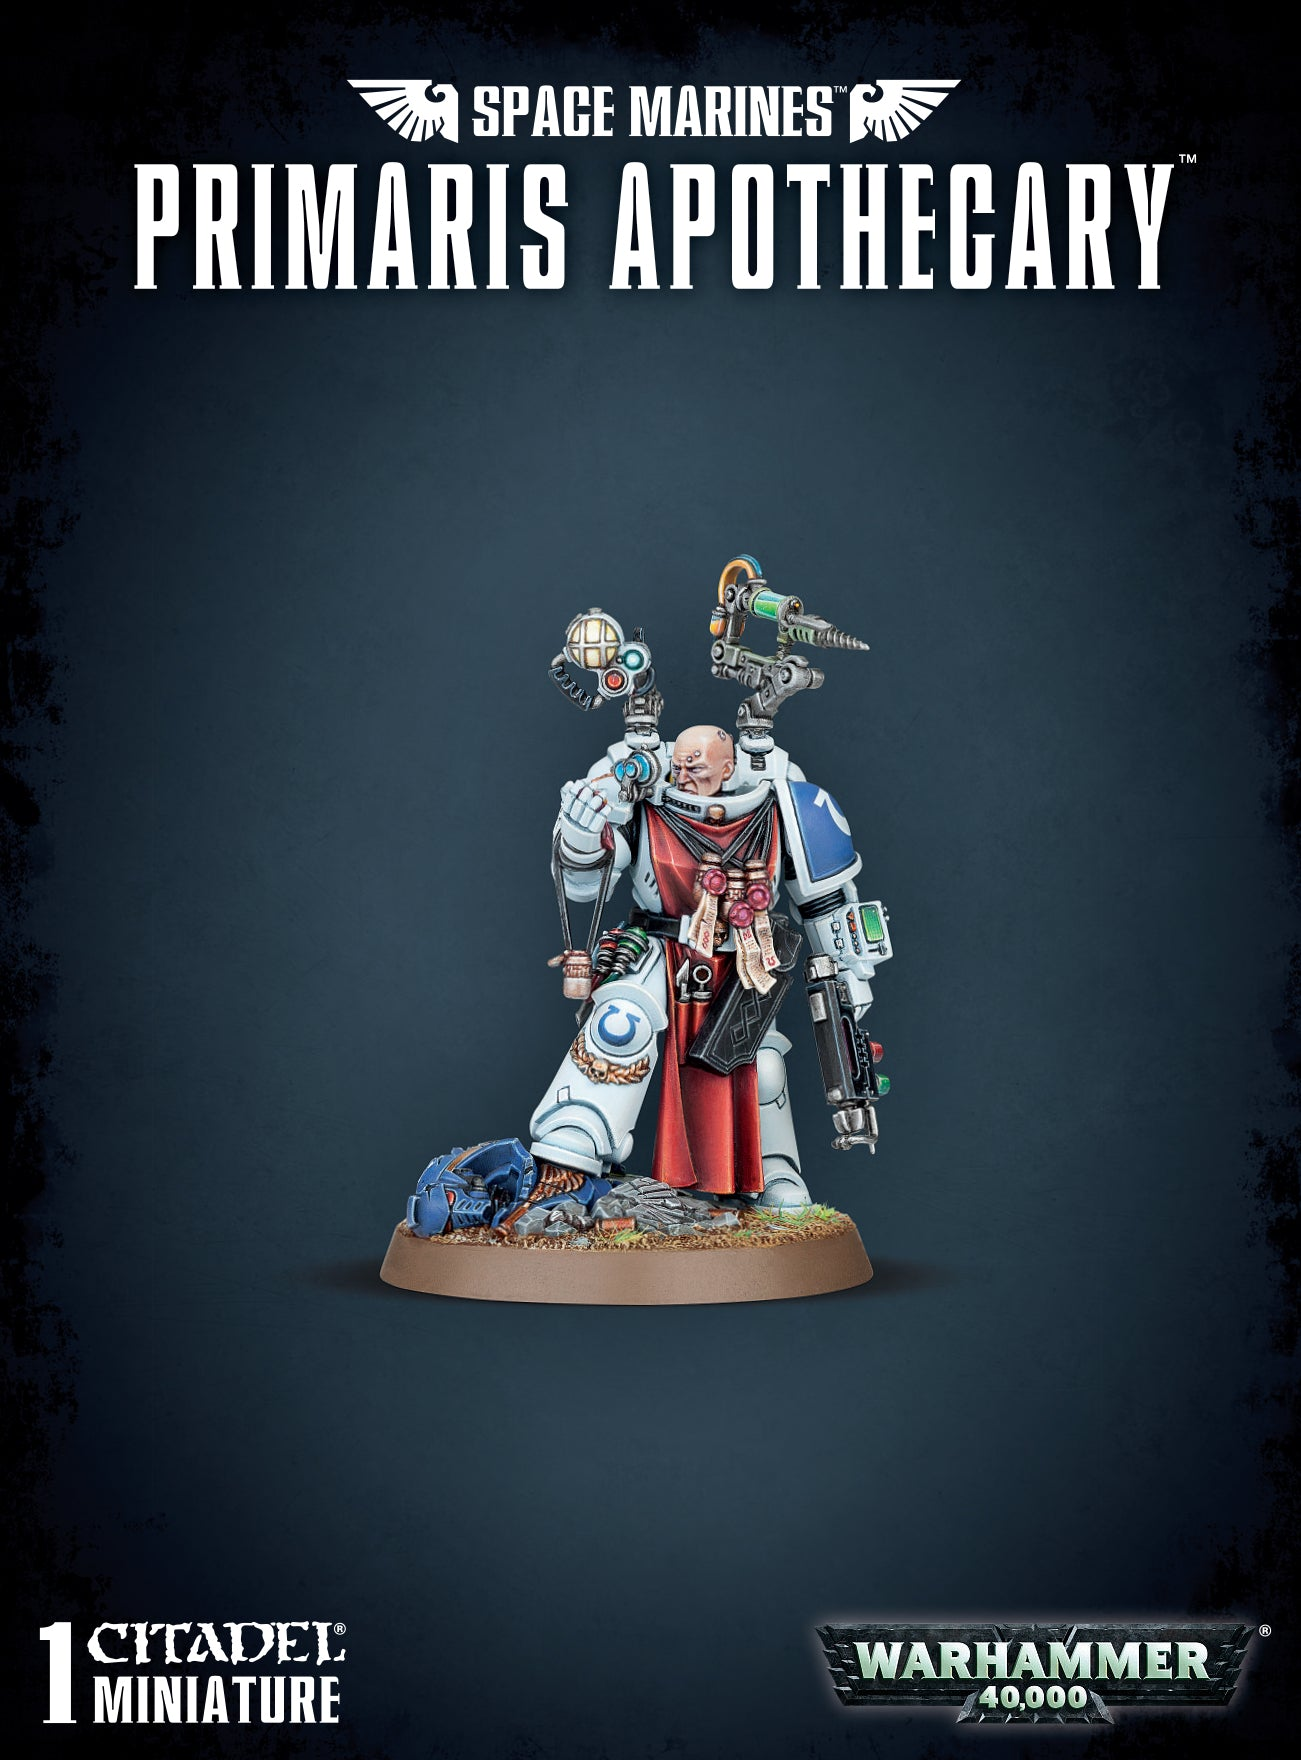 Primaris Apothecary-Miniatures|Figurines-Multizone: Comics And Games | Multizone: Comics And Games